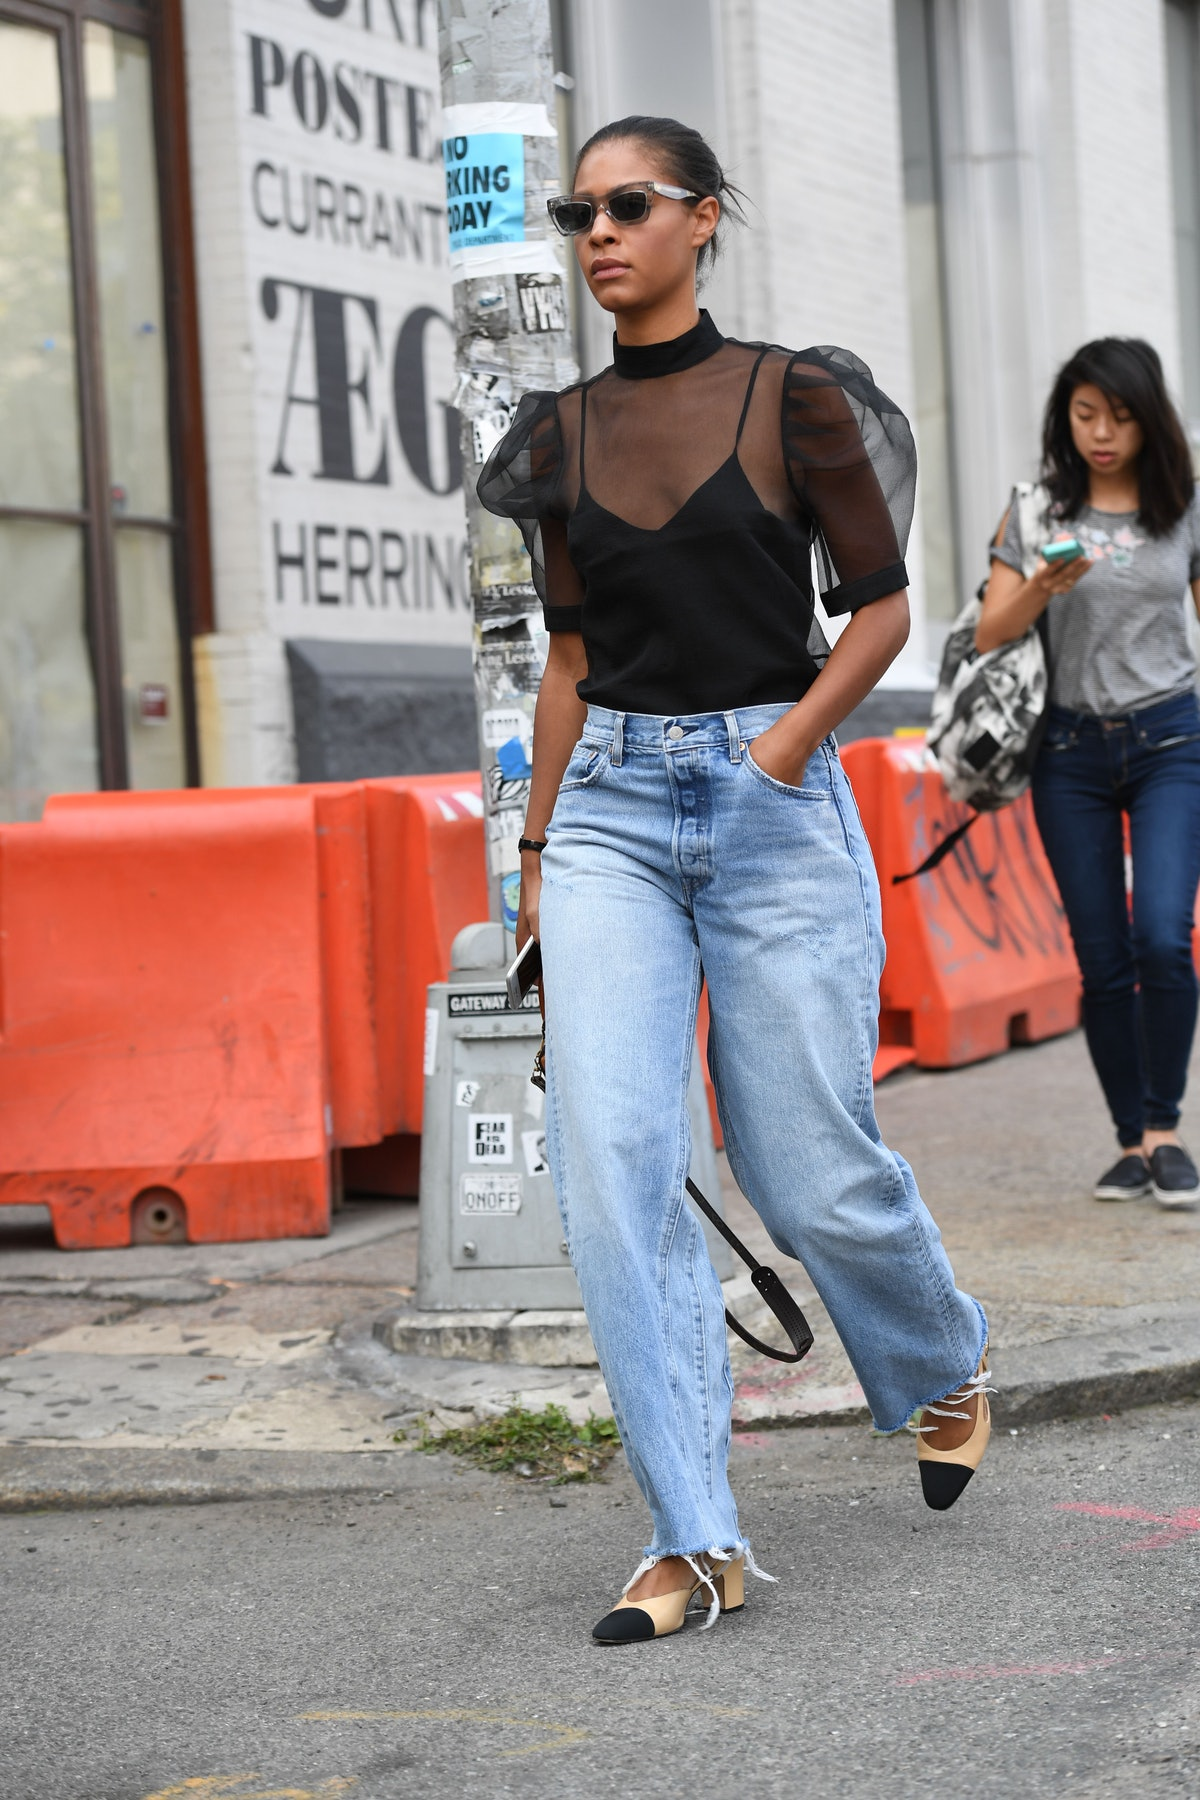 Street style photo featuring an outfit baggy jeans worn with a sheer black blouse that leans into th...